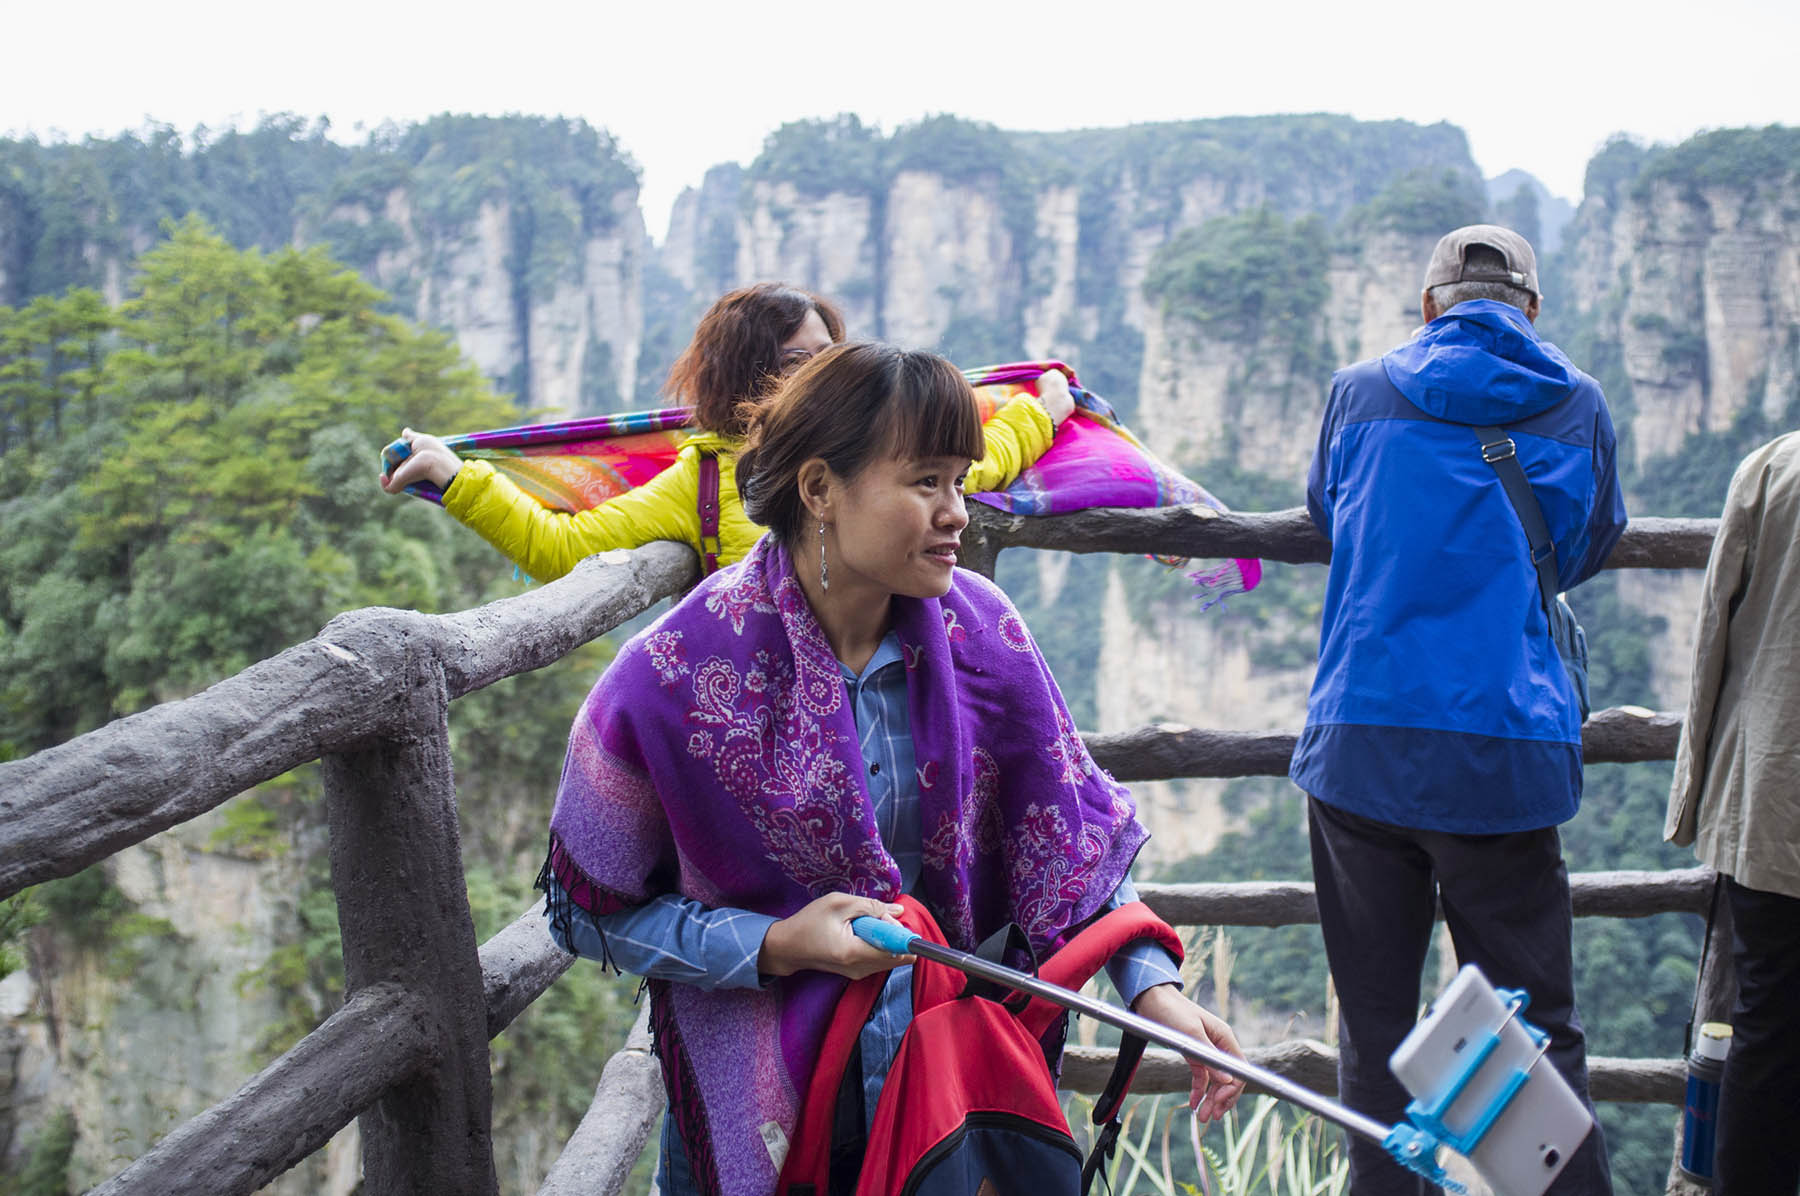 Countless Chinese tourists with selfie sticks.